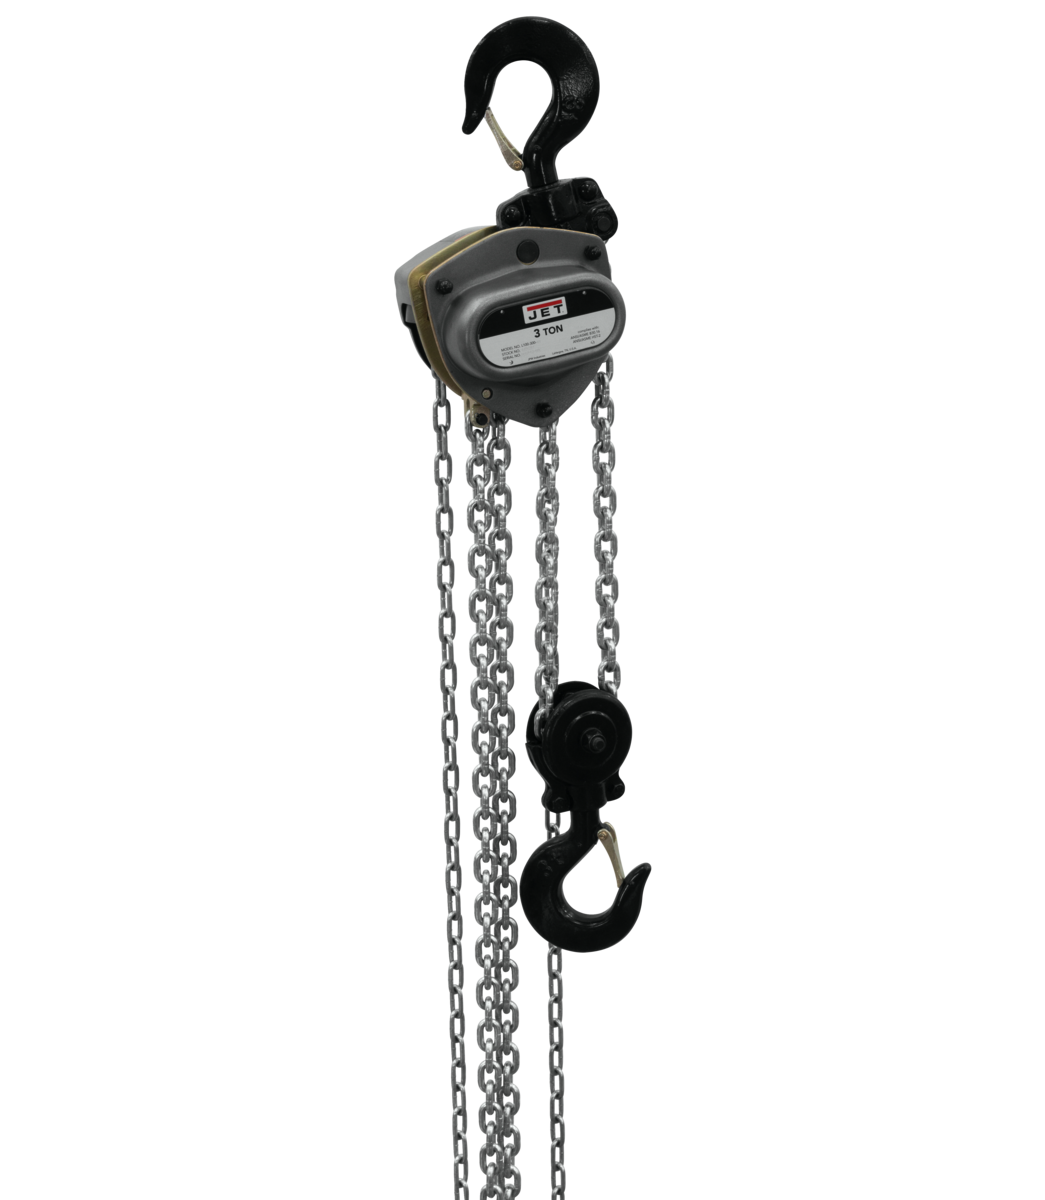 L-100-300WO-10, 3-Ton Hand Chain Hoist With 10' Lift & Overload Protection